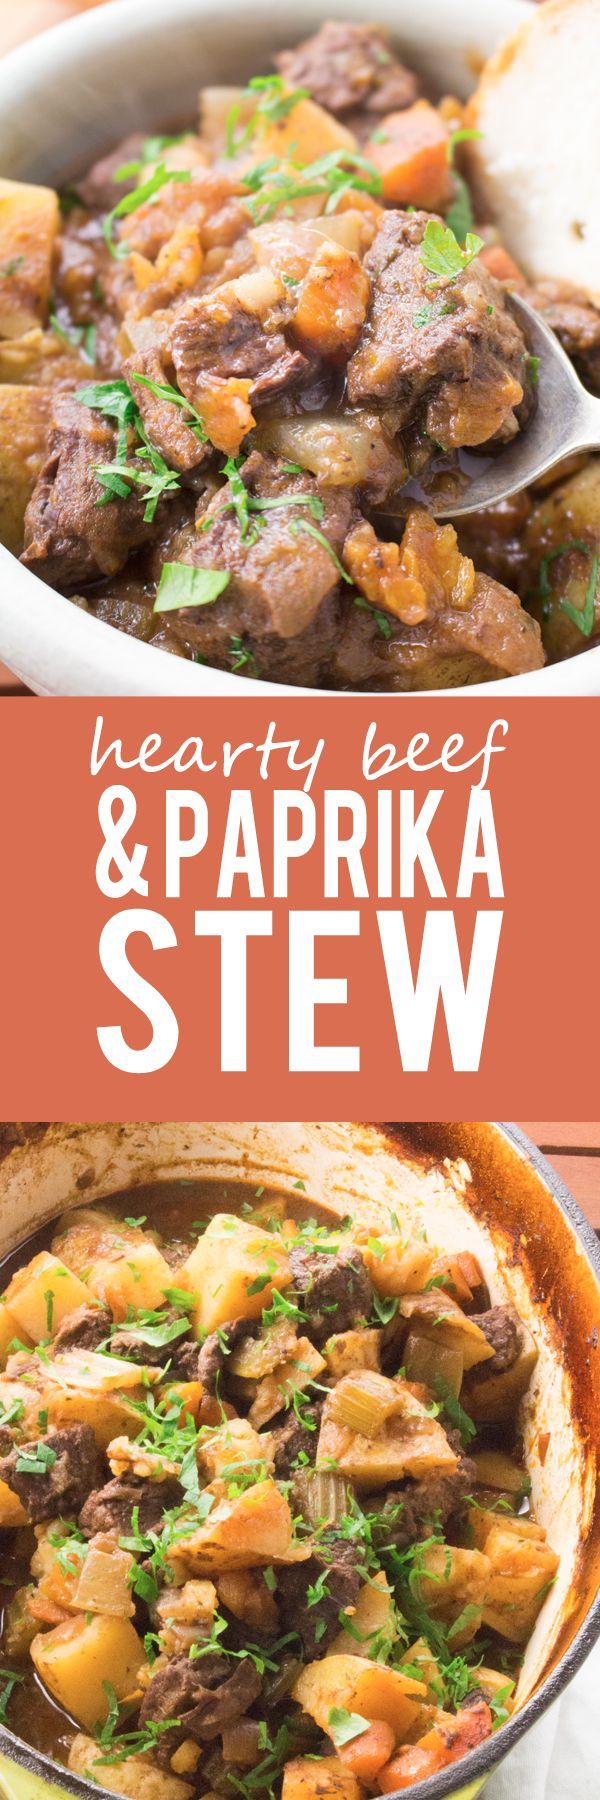 Beef and Paprika Stew - Hearty, cozy and just so easy! A delicious hearty flavor to get you through the cold season! MUST TRY!!